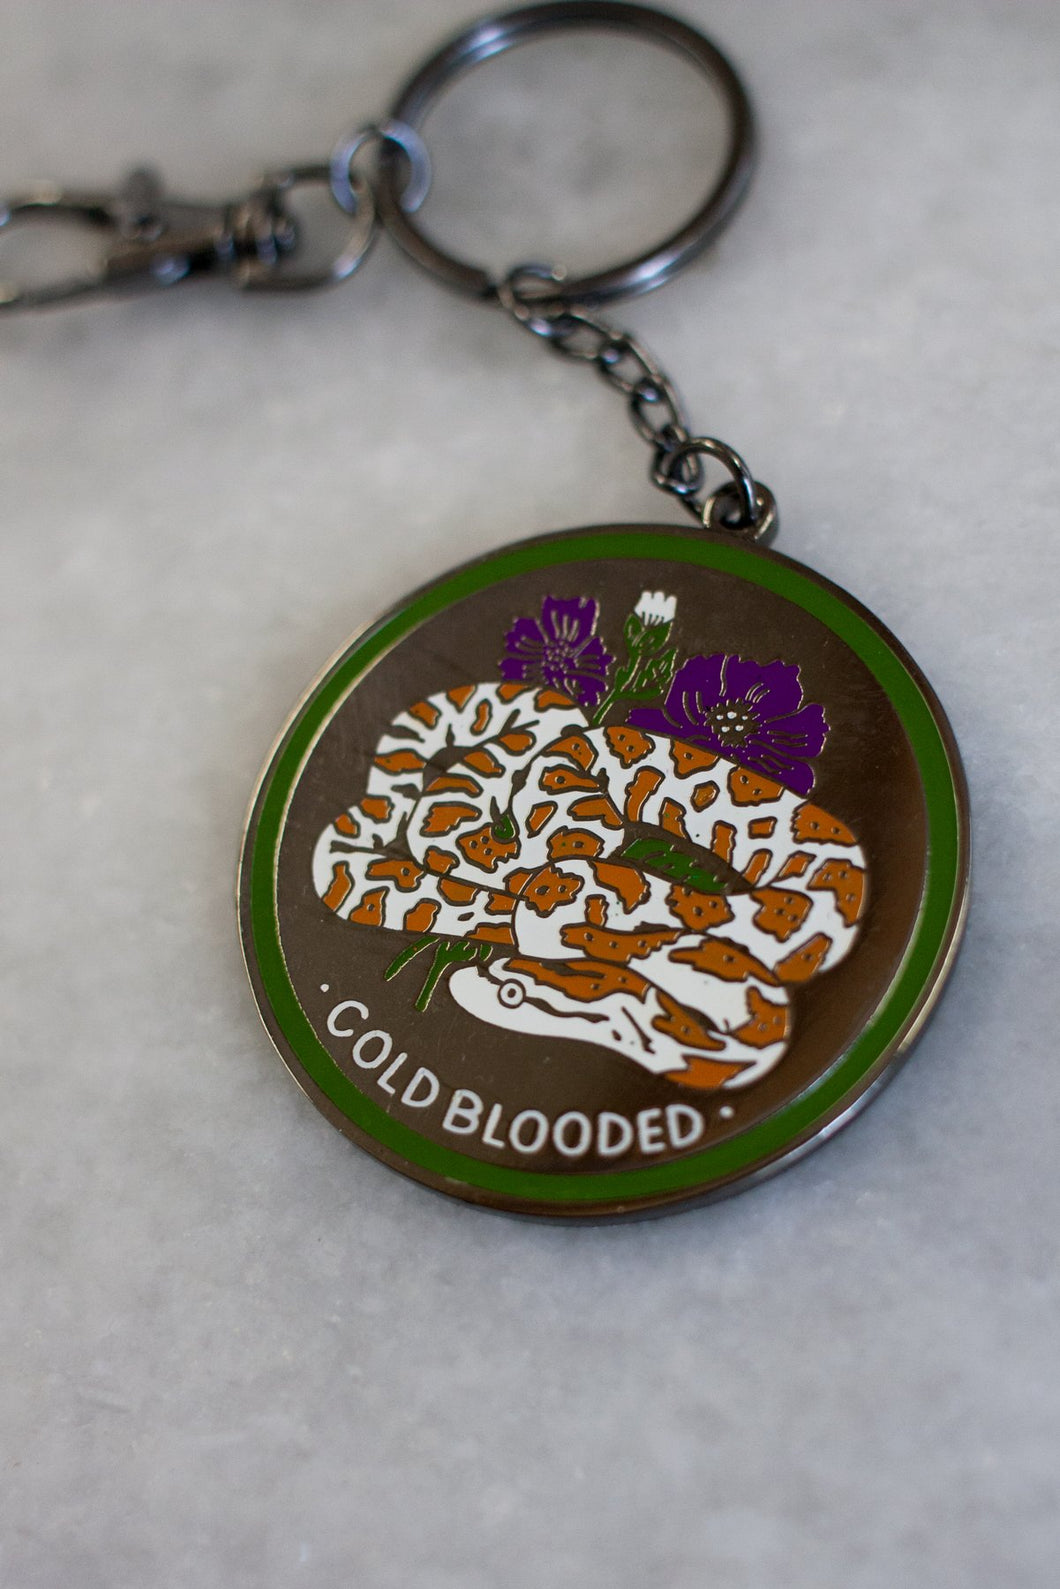 Cold Blooded Key Chain